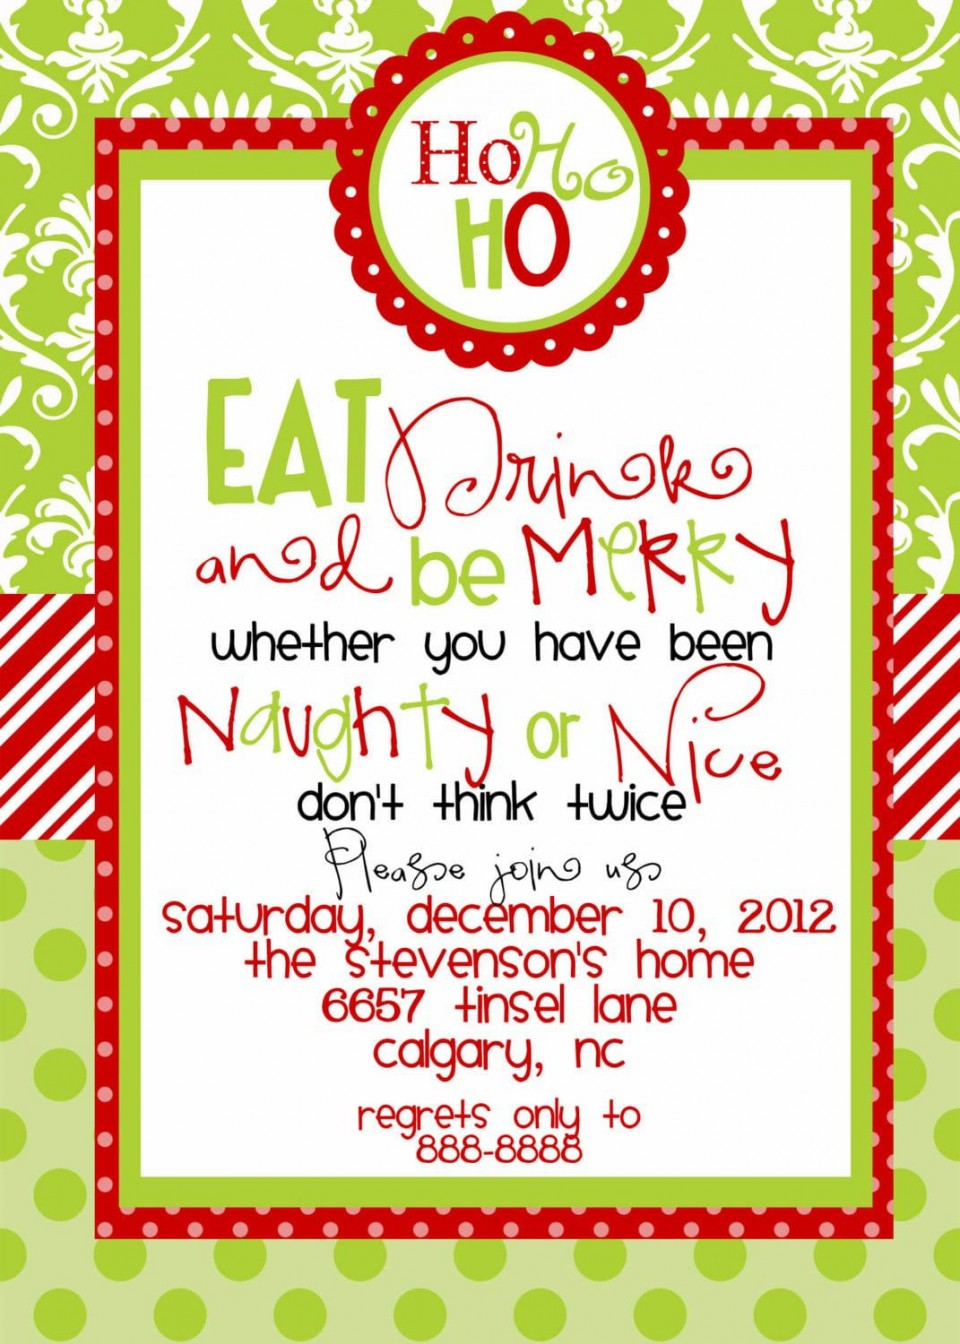 006 Remarkable Holiday Party Invitation Template Free Design  Elegant Christma Download Dinner Printable Australia960